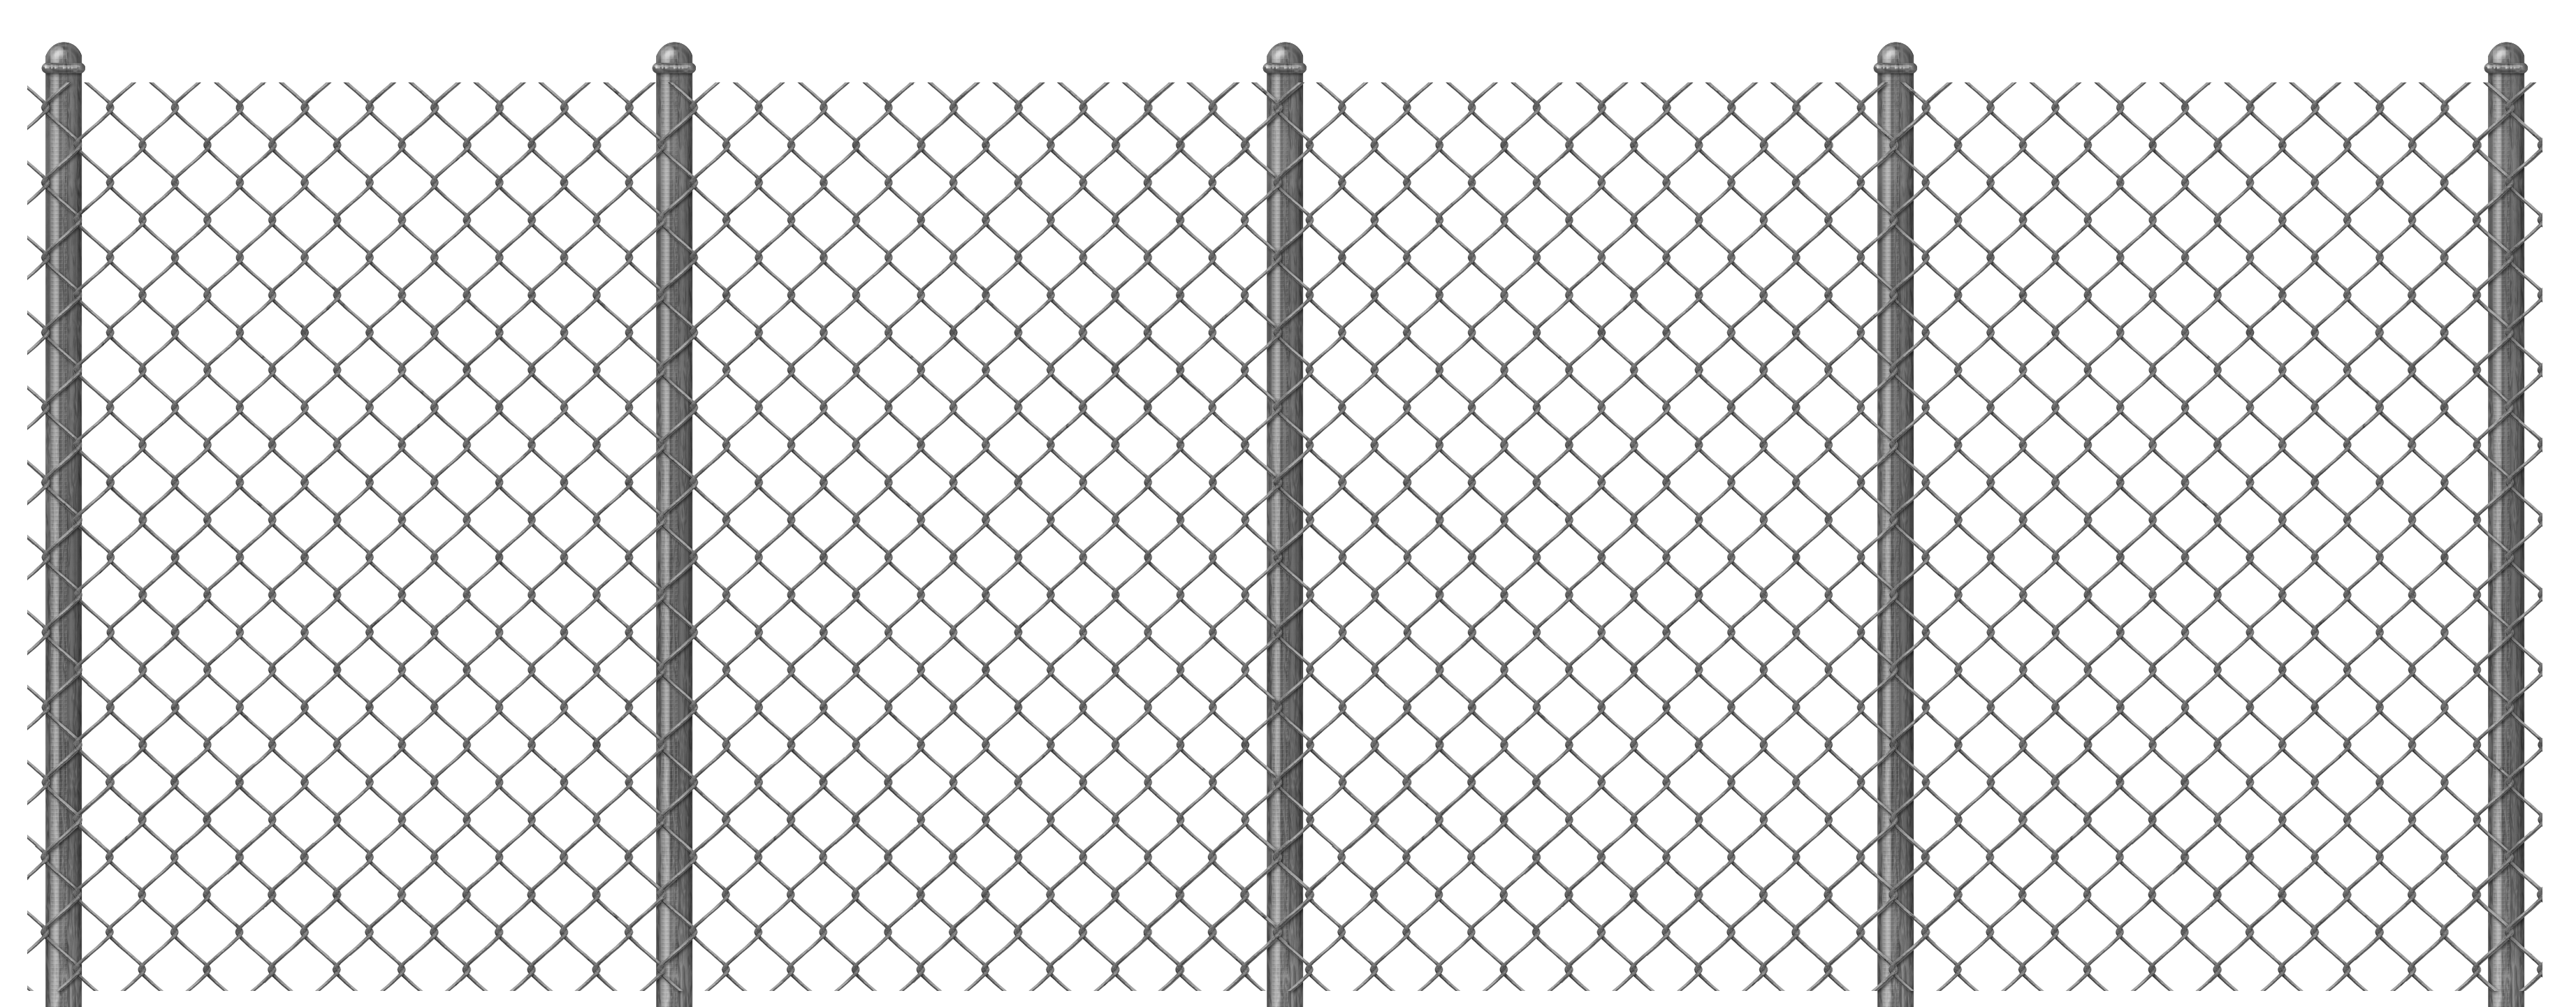 Metal Fence Png - Metal Fence Transparent Pictures PNG Ima #19290 - PNG Images - PNGio